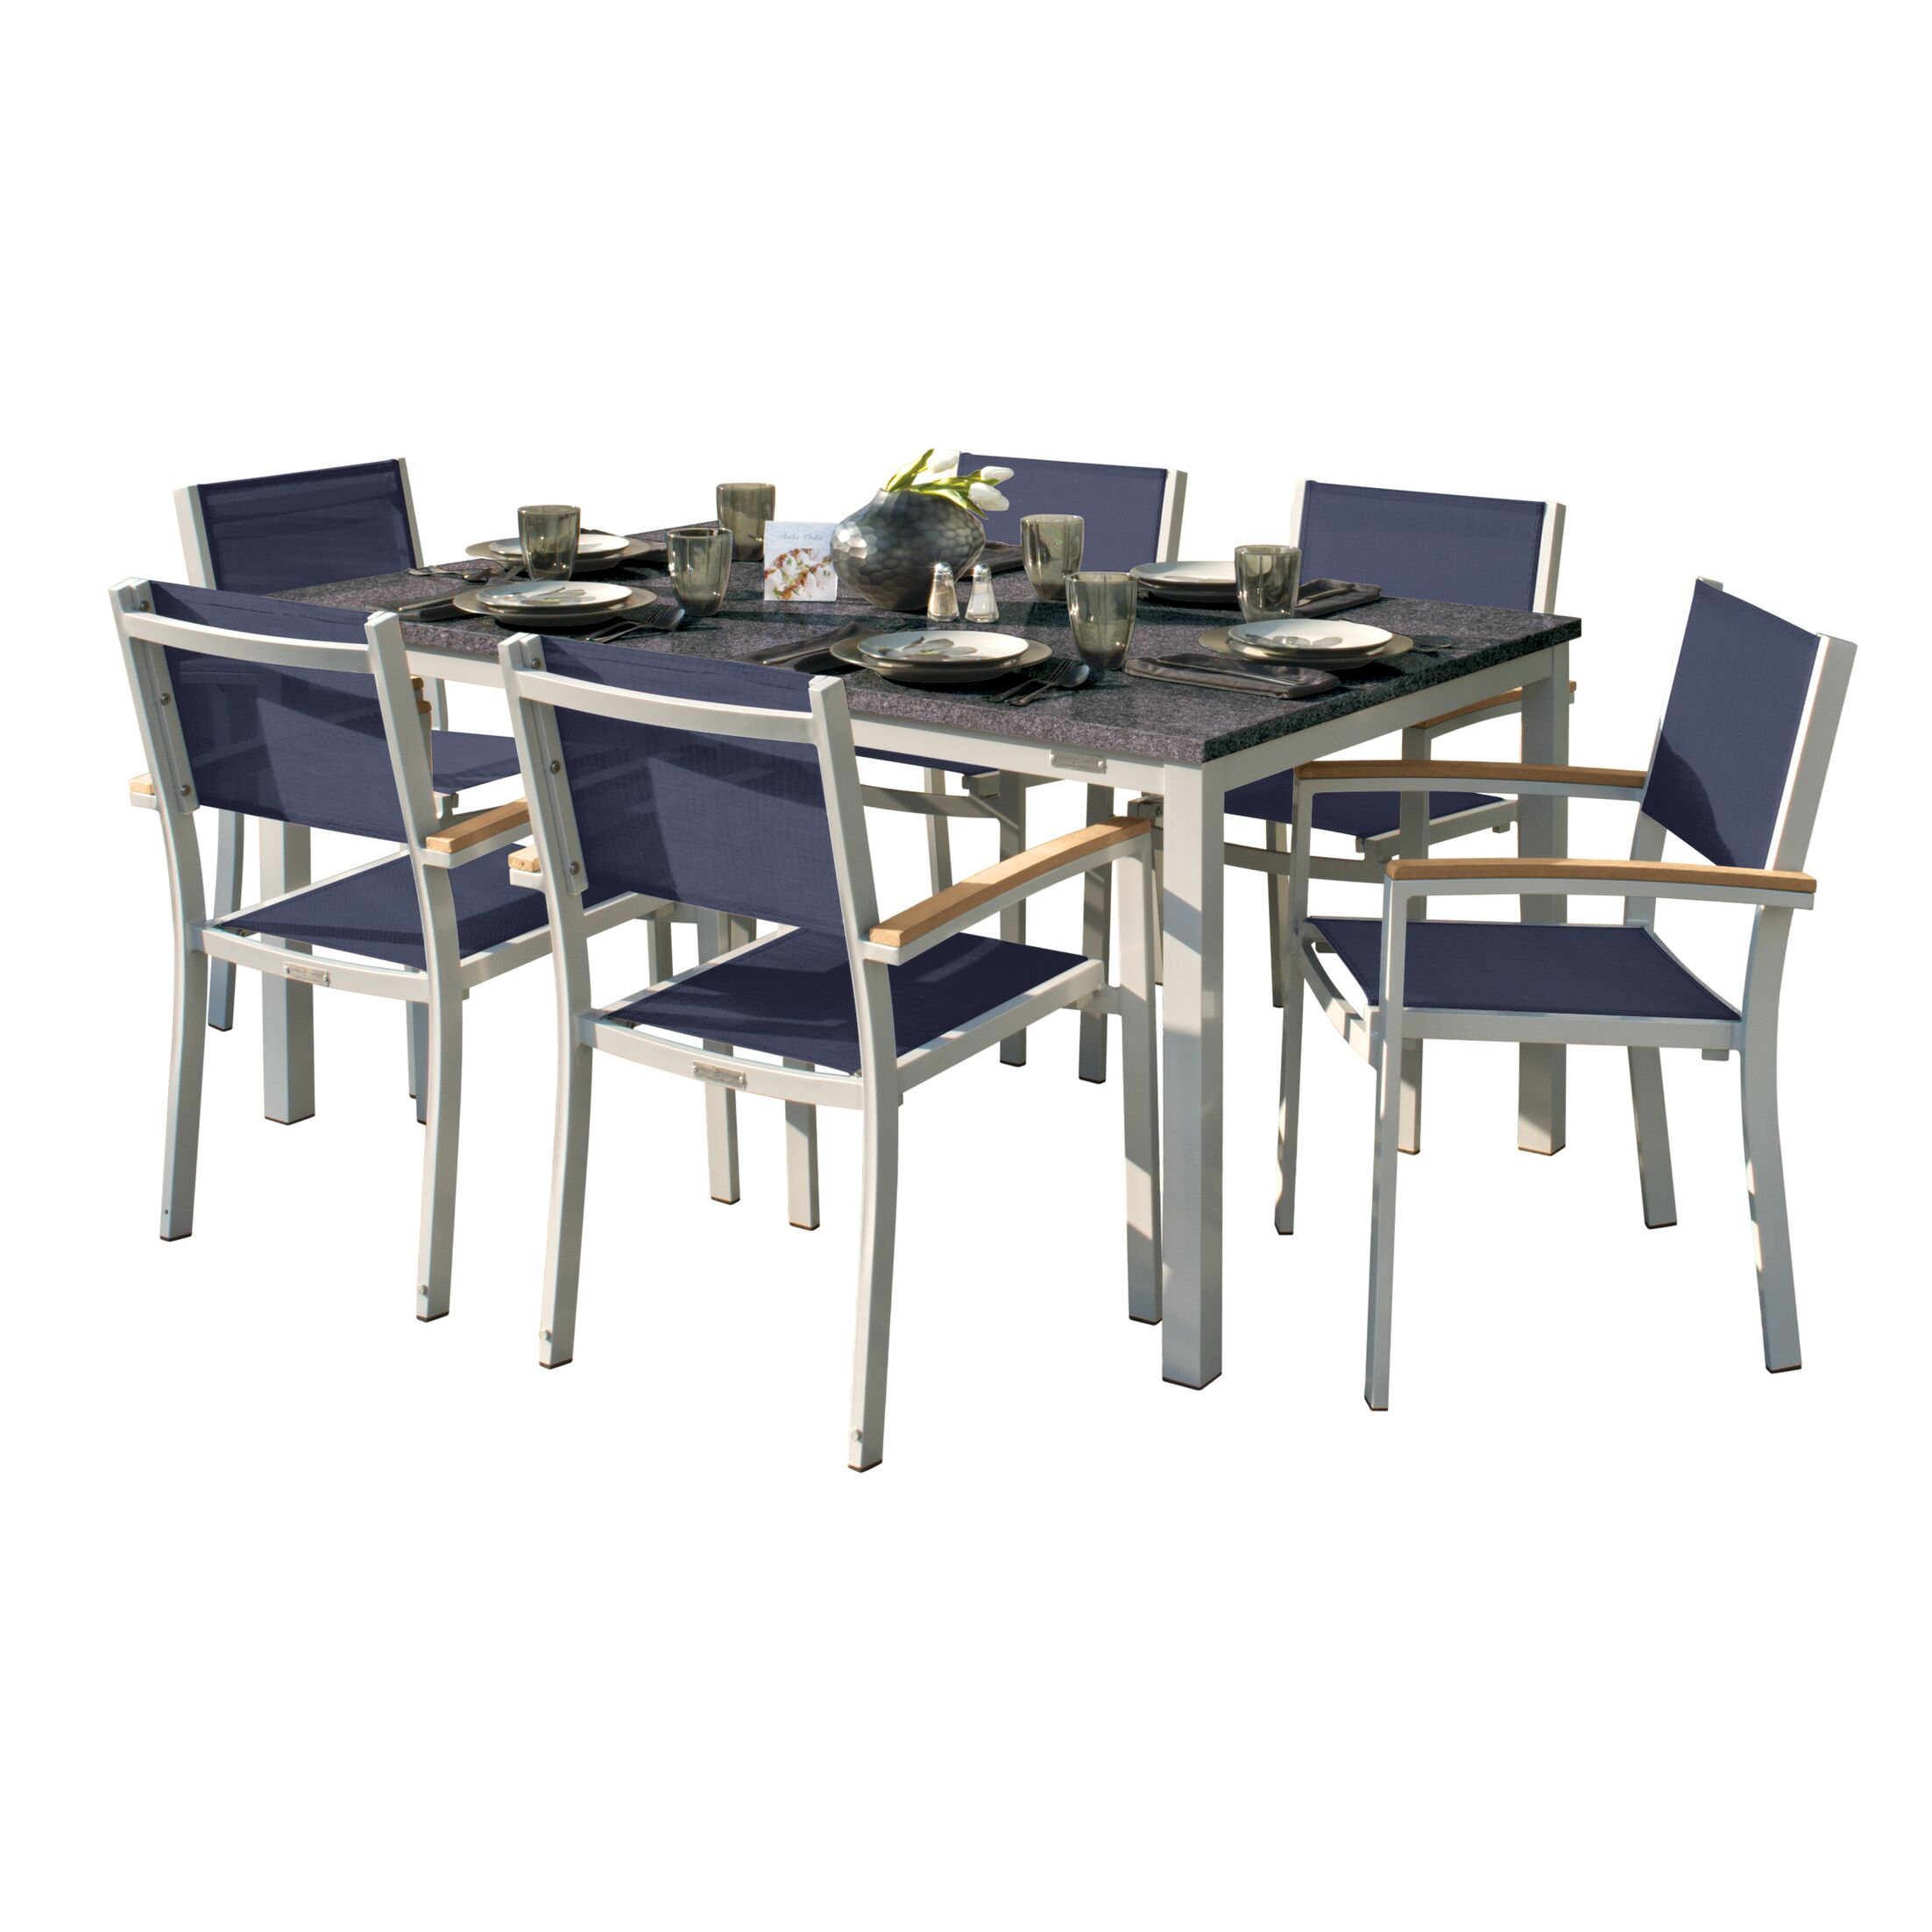 Laskowski 7 Piece Teak Dining Set Cushion Color: Ink Pen